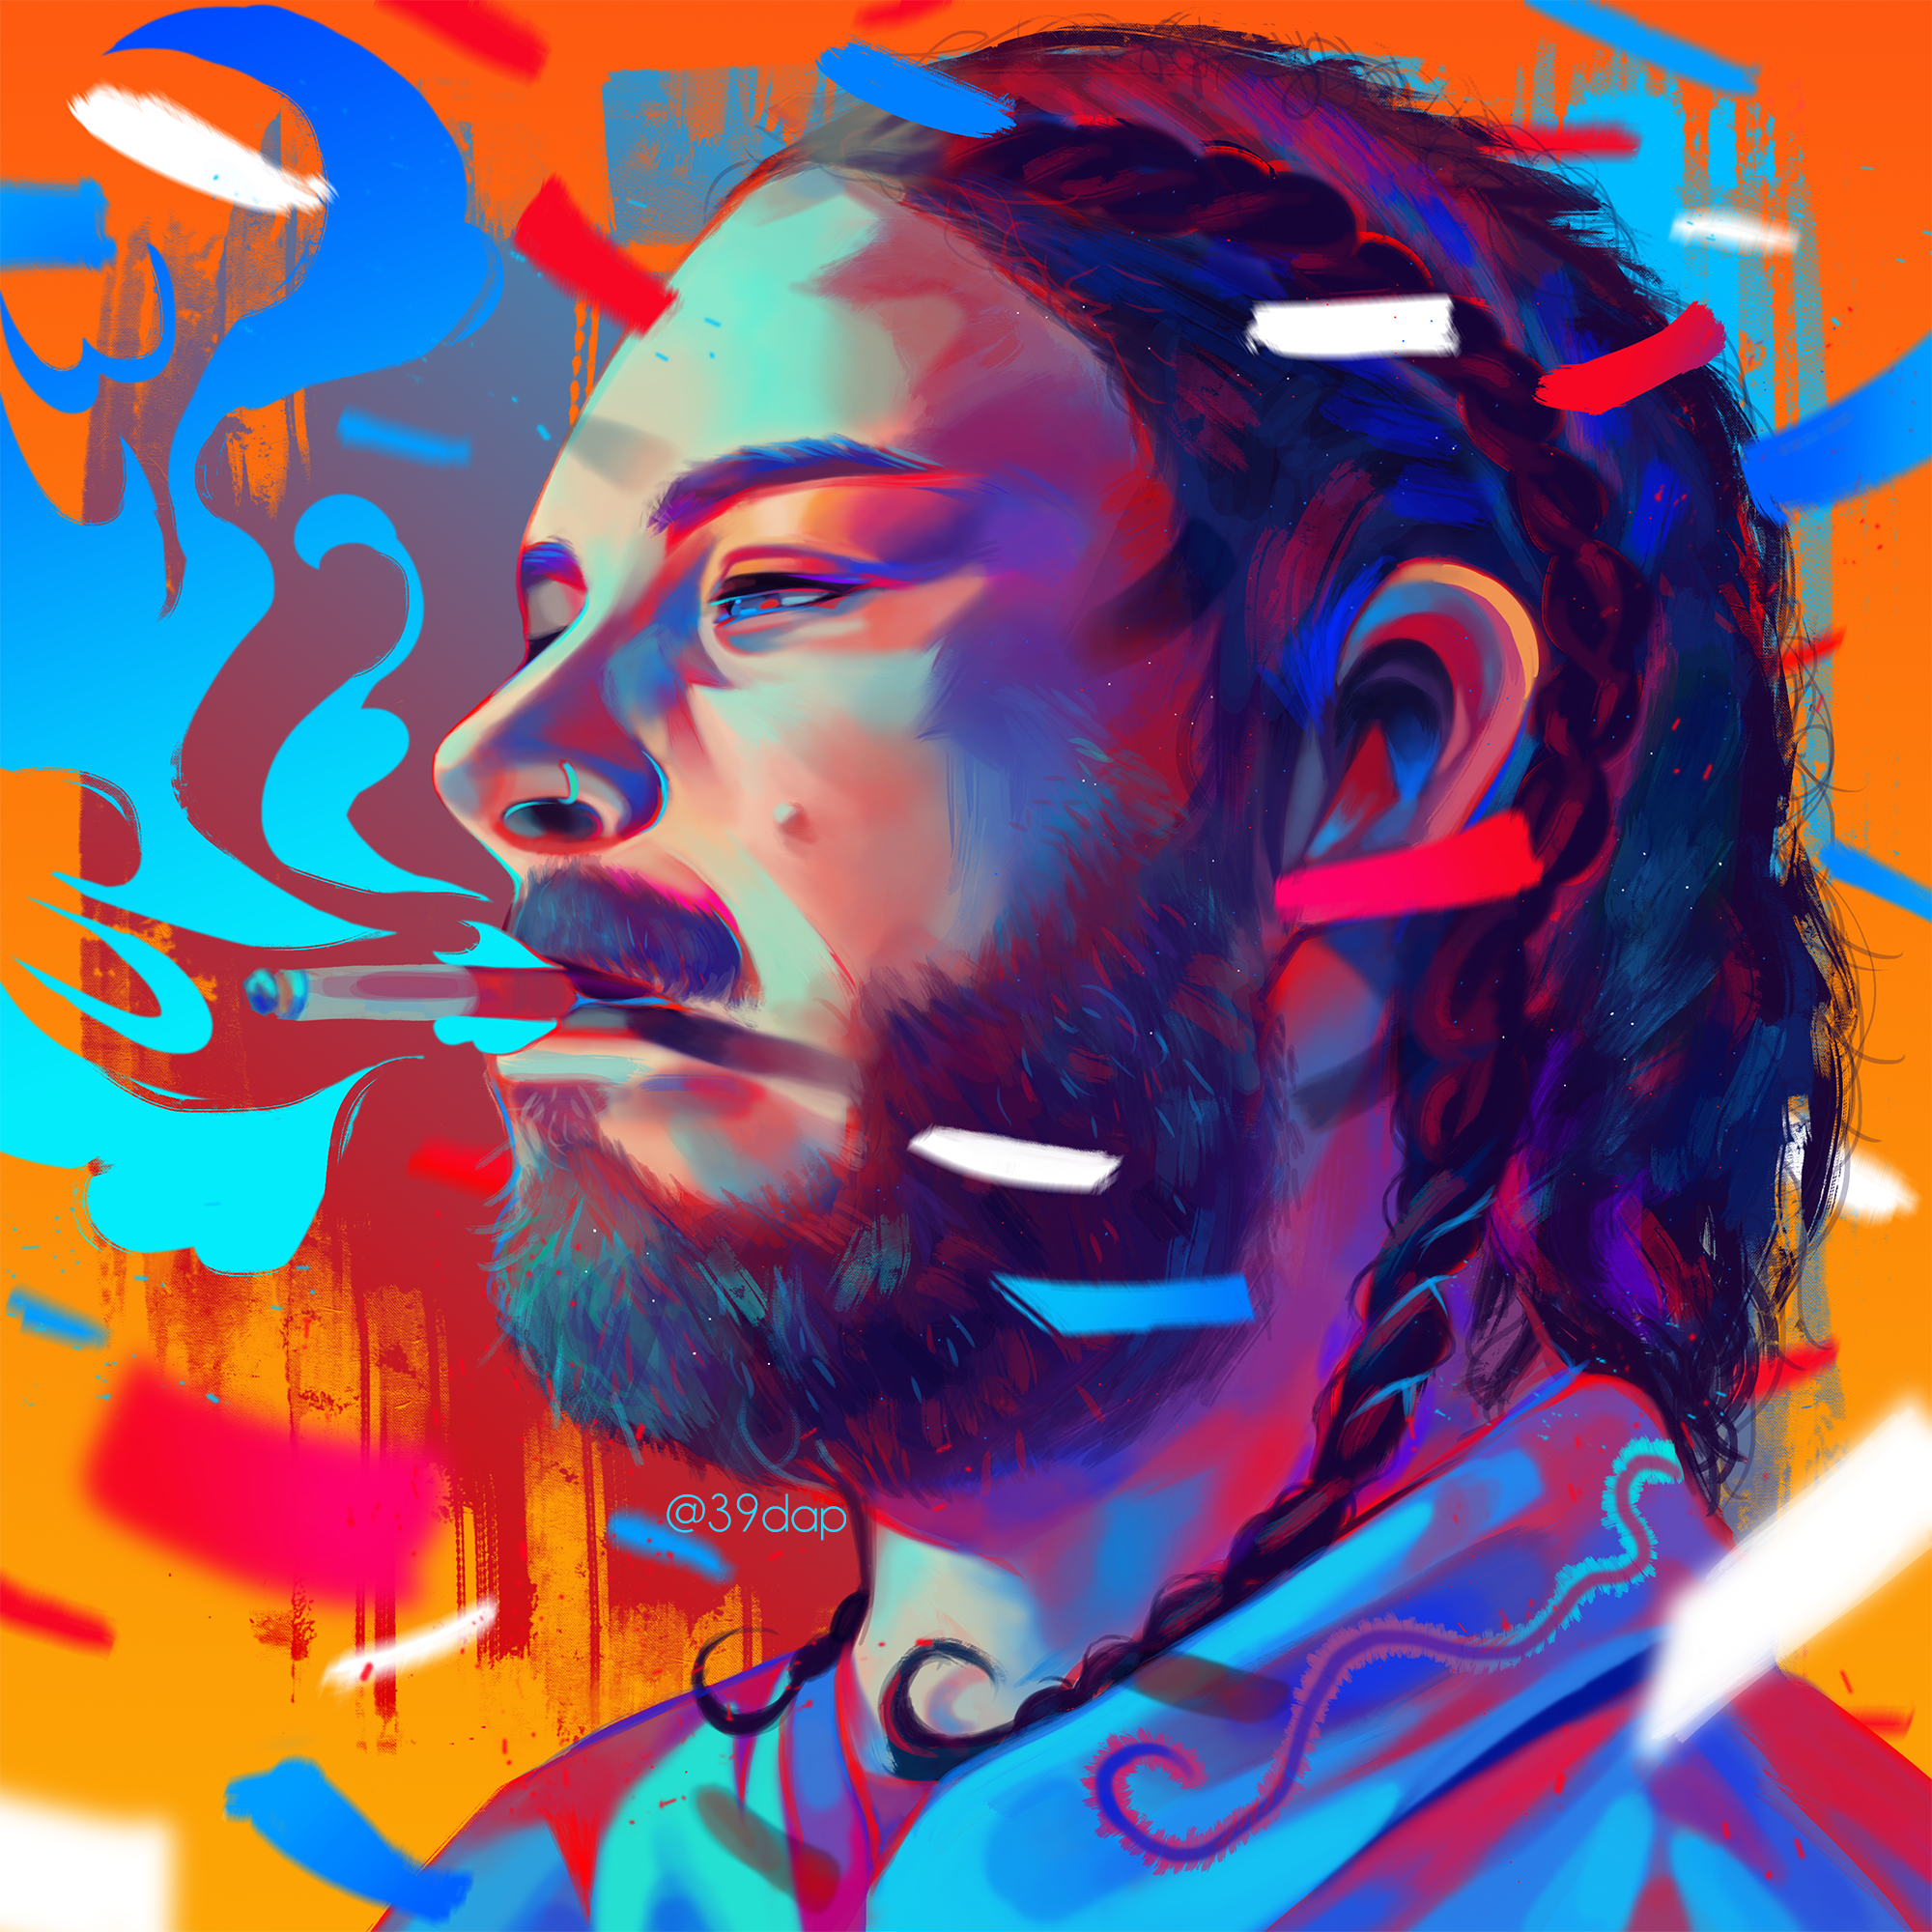 Post Malone Clip Art: Post Malone', Digital, [2000x2000px] Posted By /u/39dap To